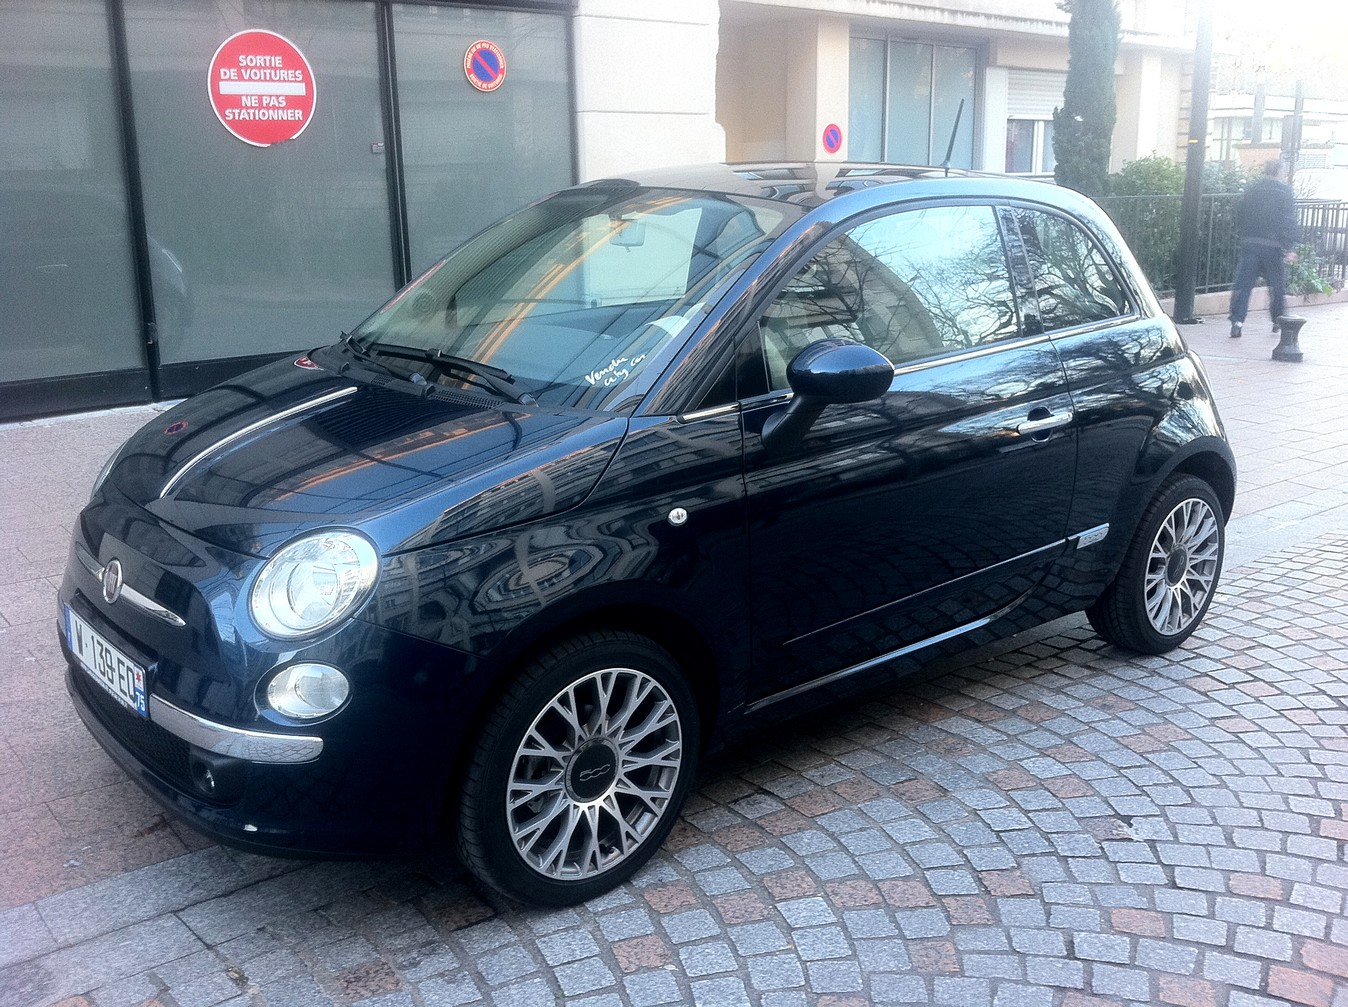 fiat 500 abarth turbo bvr voiture en leasing pas cher citycar paris. Black Bedroom Furniture Sets. Home Design Ideas